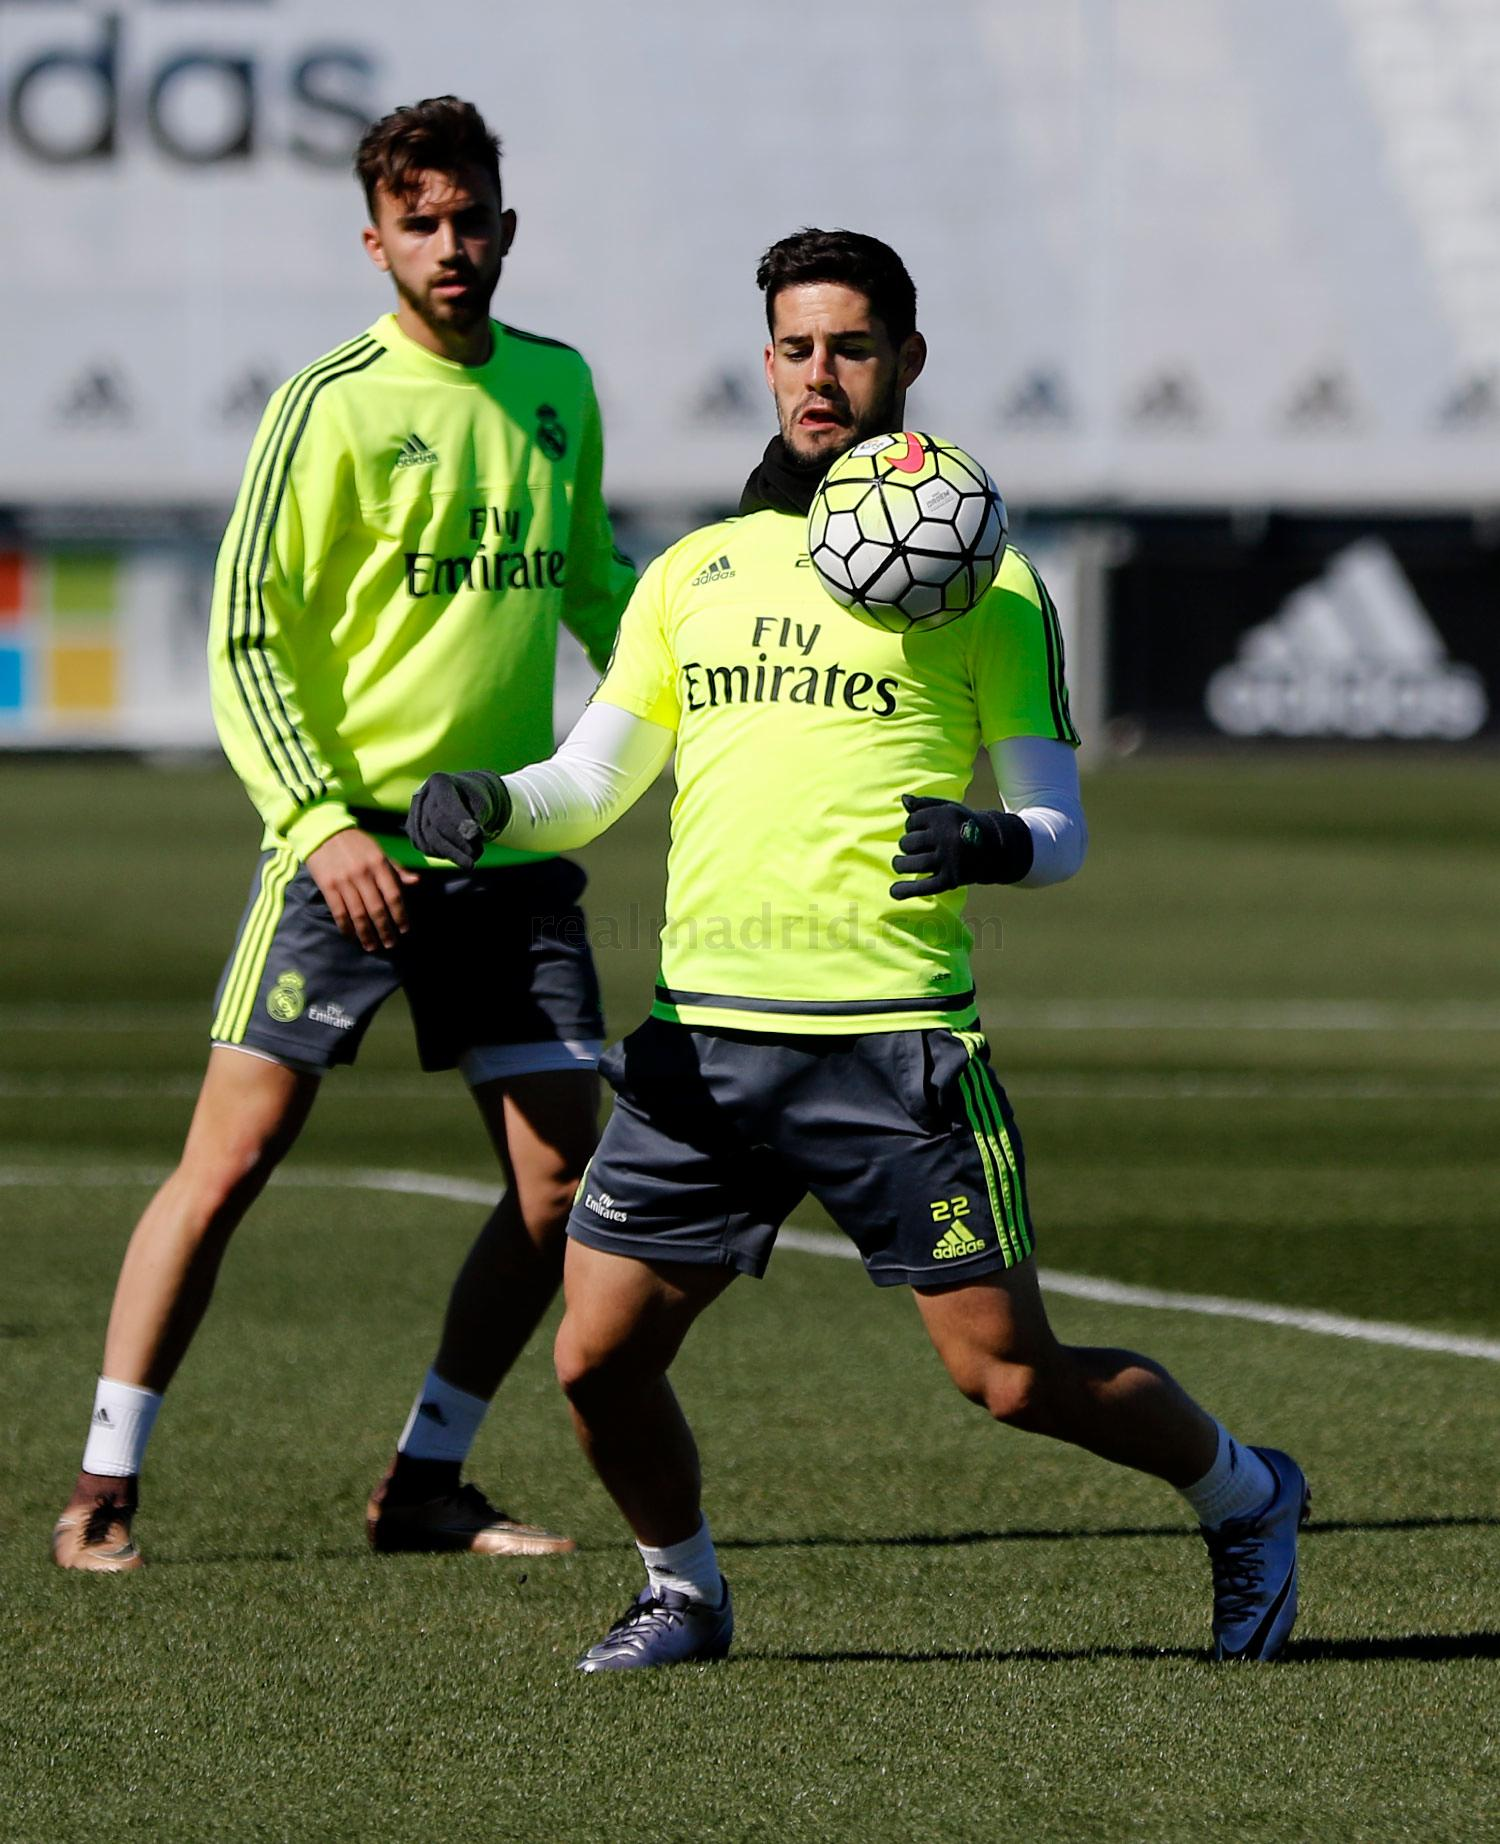 Real Madrid - Entrenamiento del Real Madrid - 11-03-2016